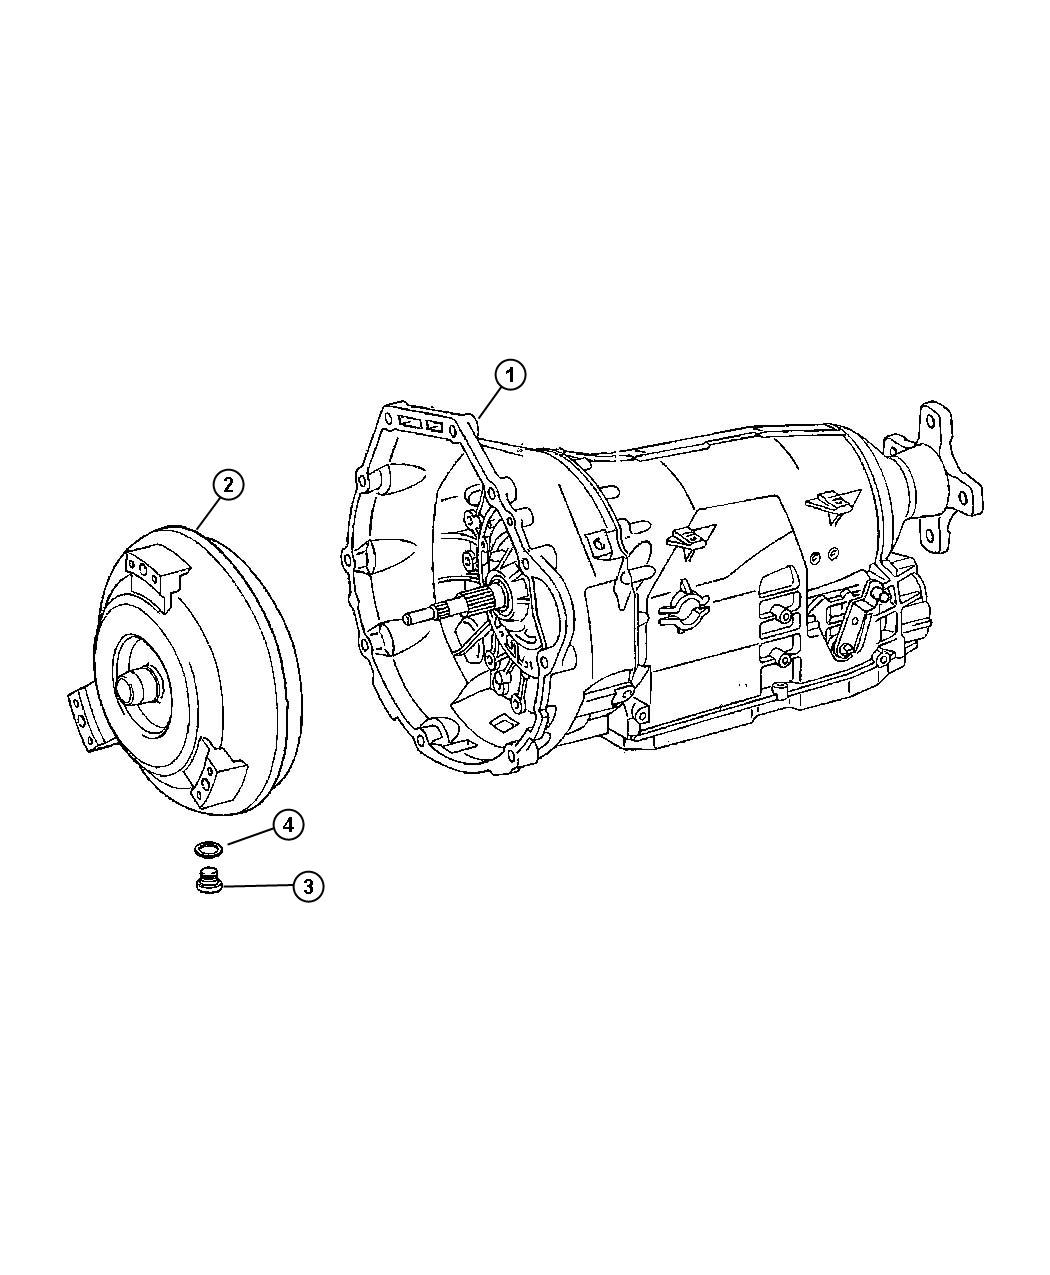 Dodge Converter Remanufactured Torque Dgz